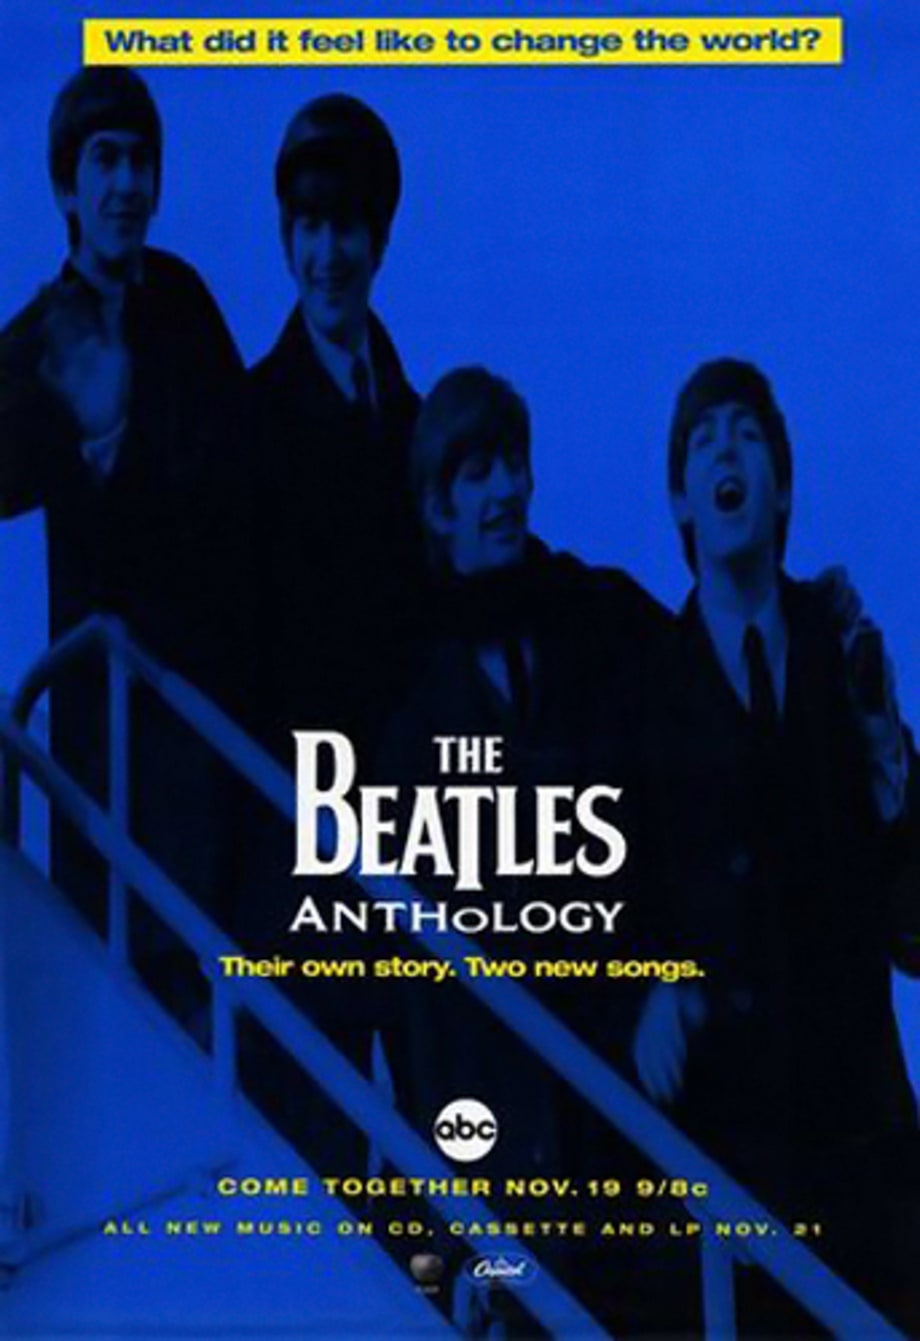 8. 'The Beatles Anthology'